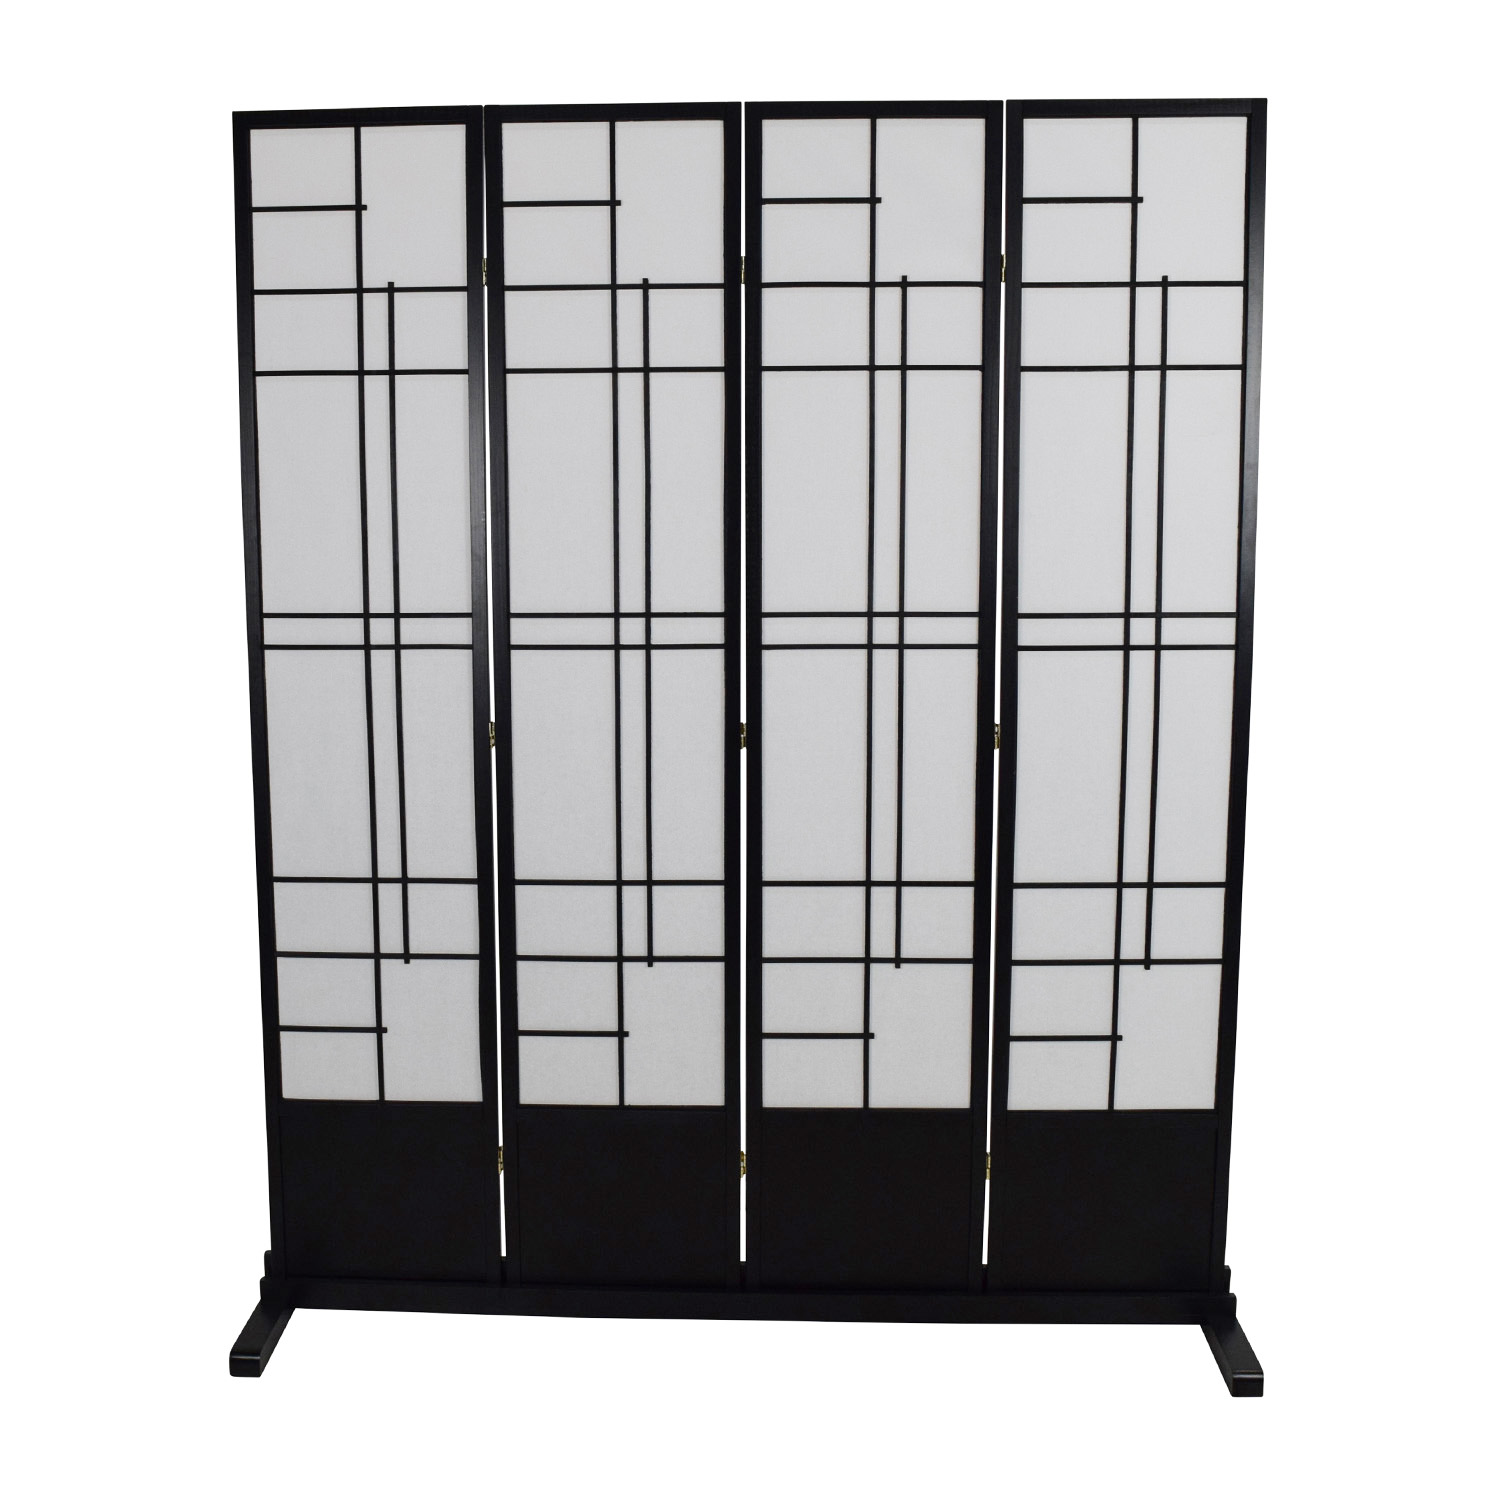 OFF Ornate Screen Divider Decor - 4 panel room divider